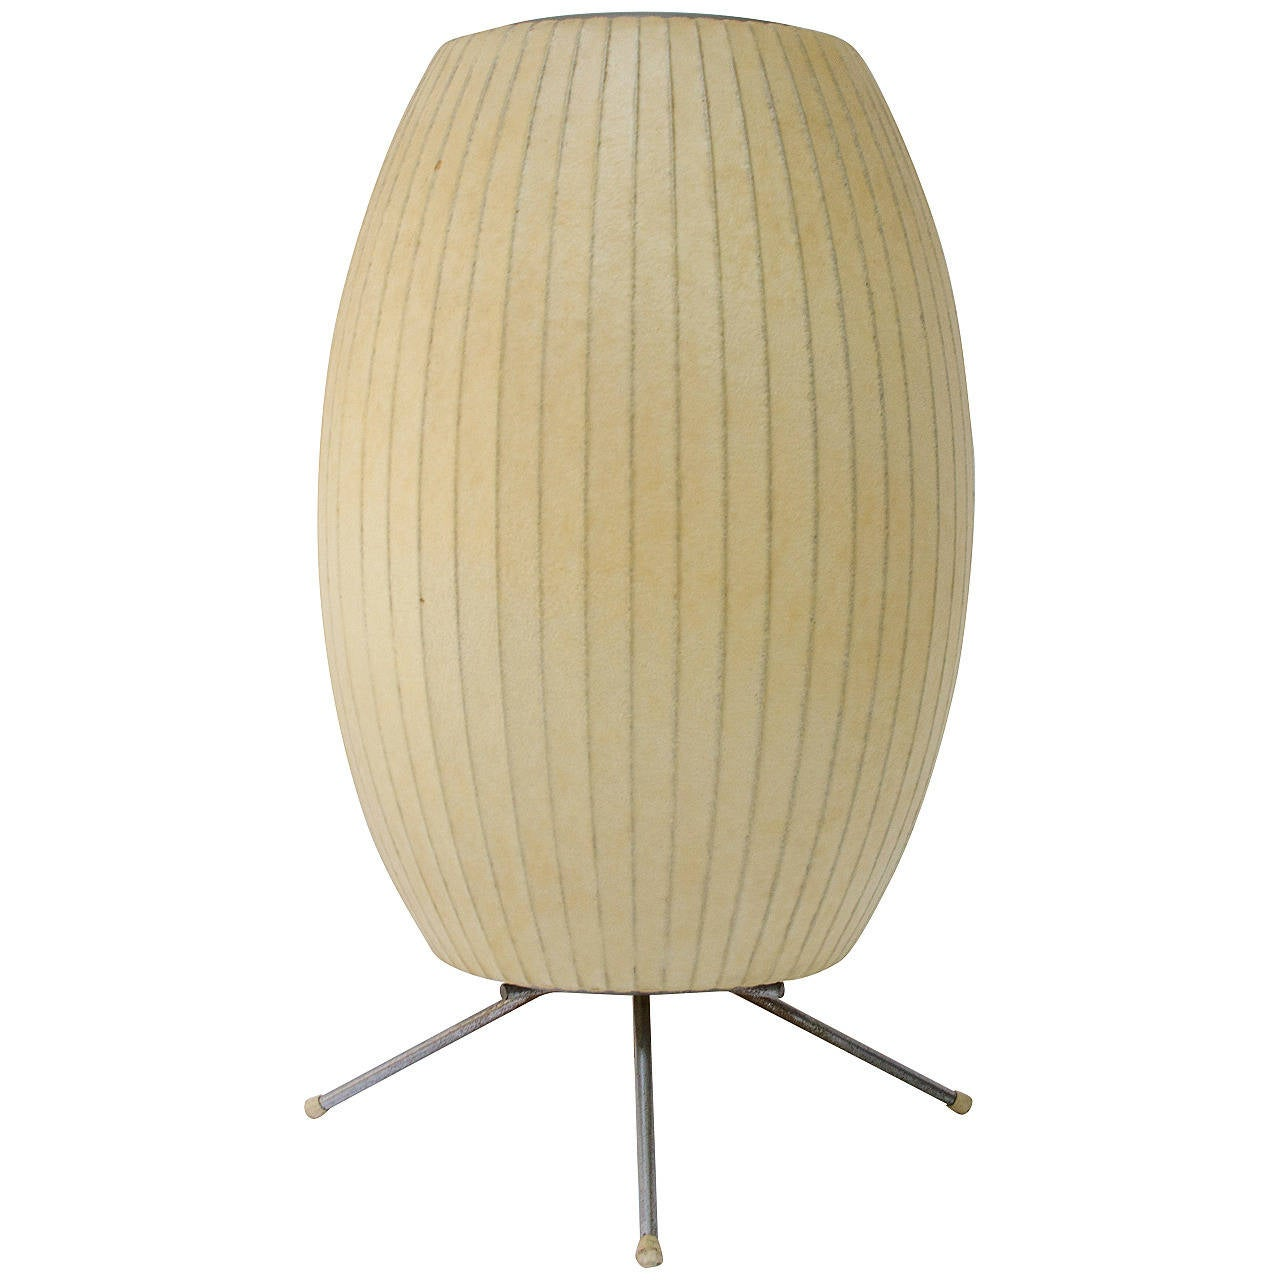 George Nelson For Howard Miller Cigar Tripod Lamp At 1stdibs